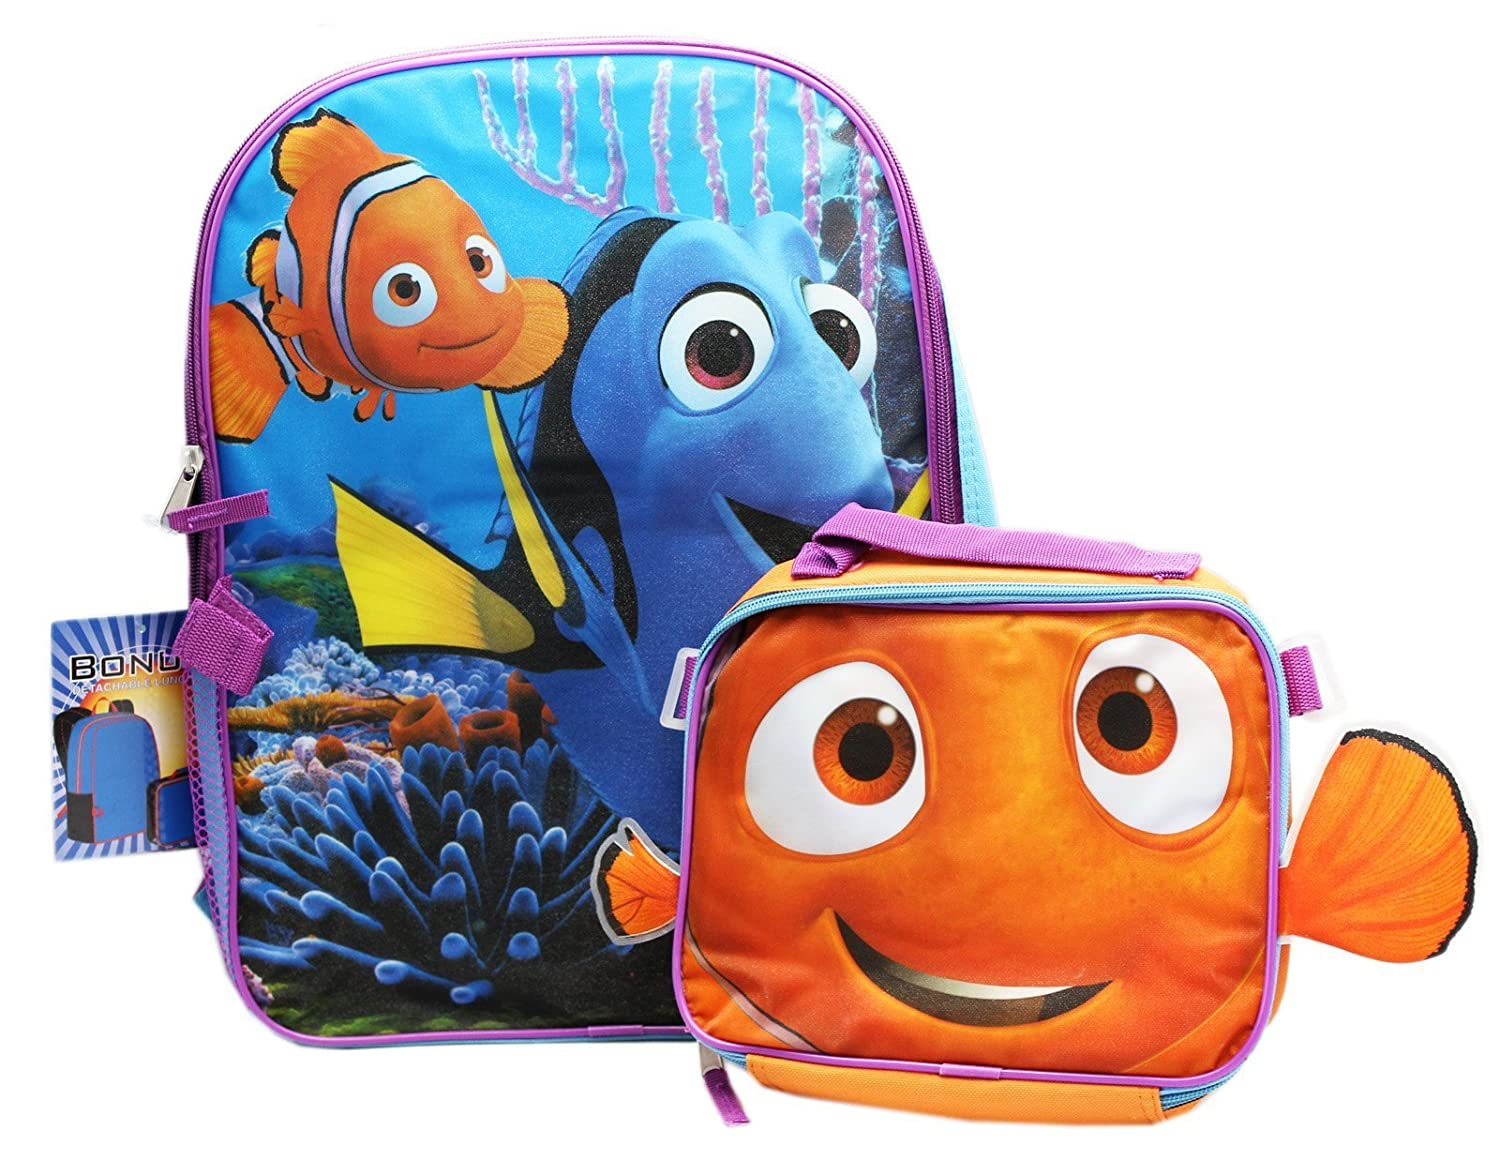 Disney Pixar's Finding Dory Full Size Kids Backpack and Utility Bag (Lunch Bag) Ruz